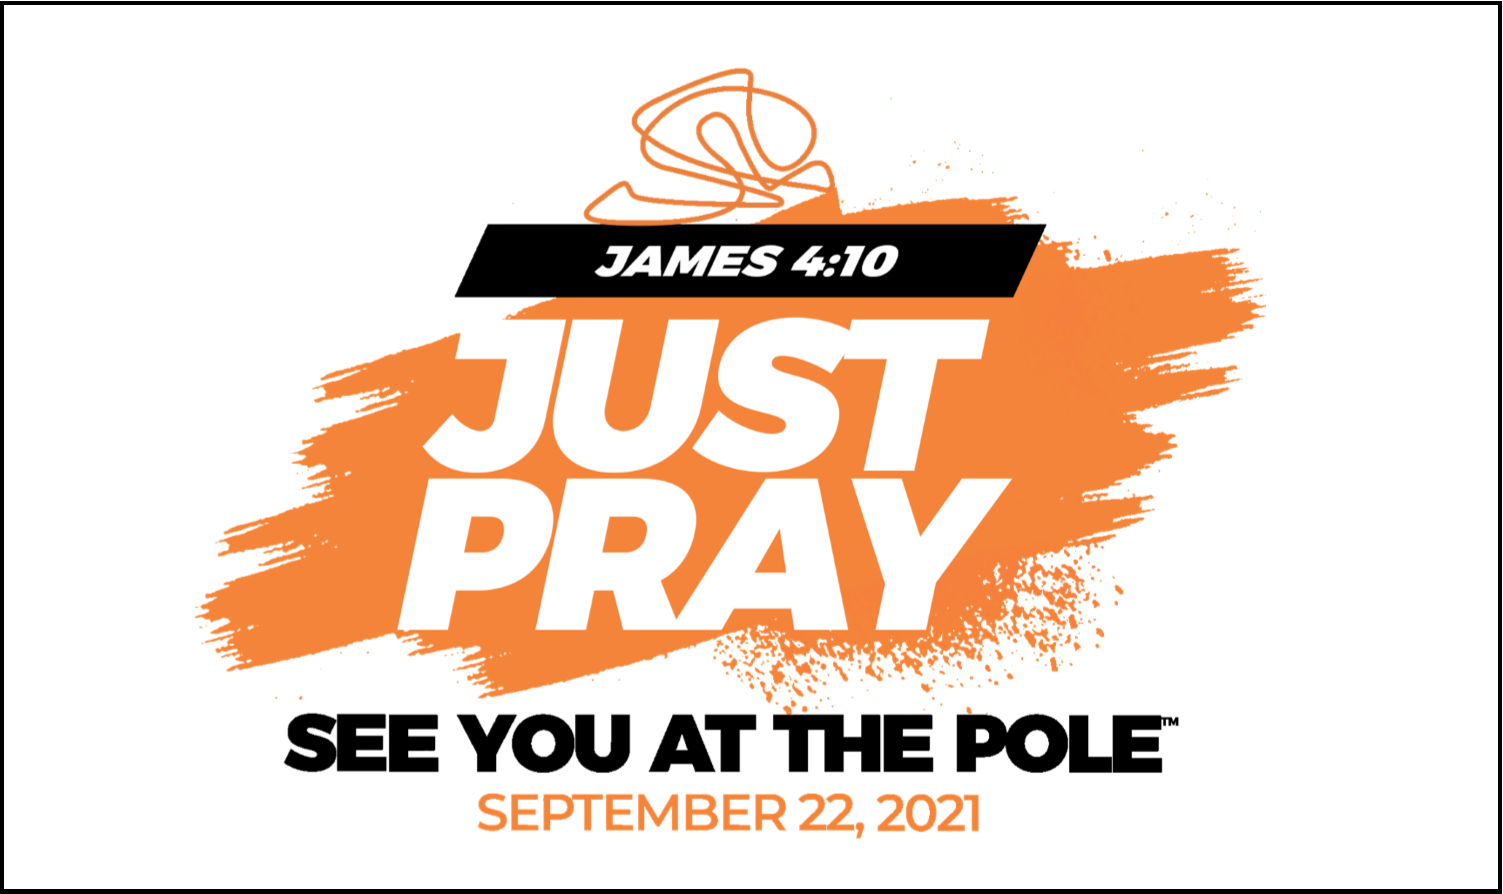 See you at the pole 2021